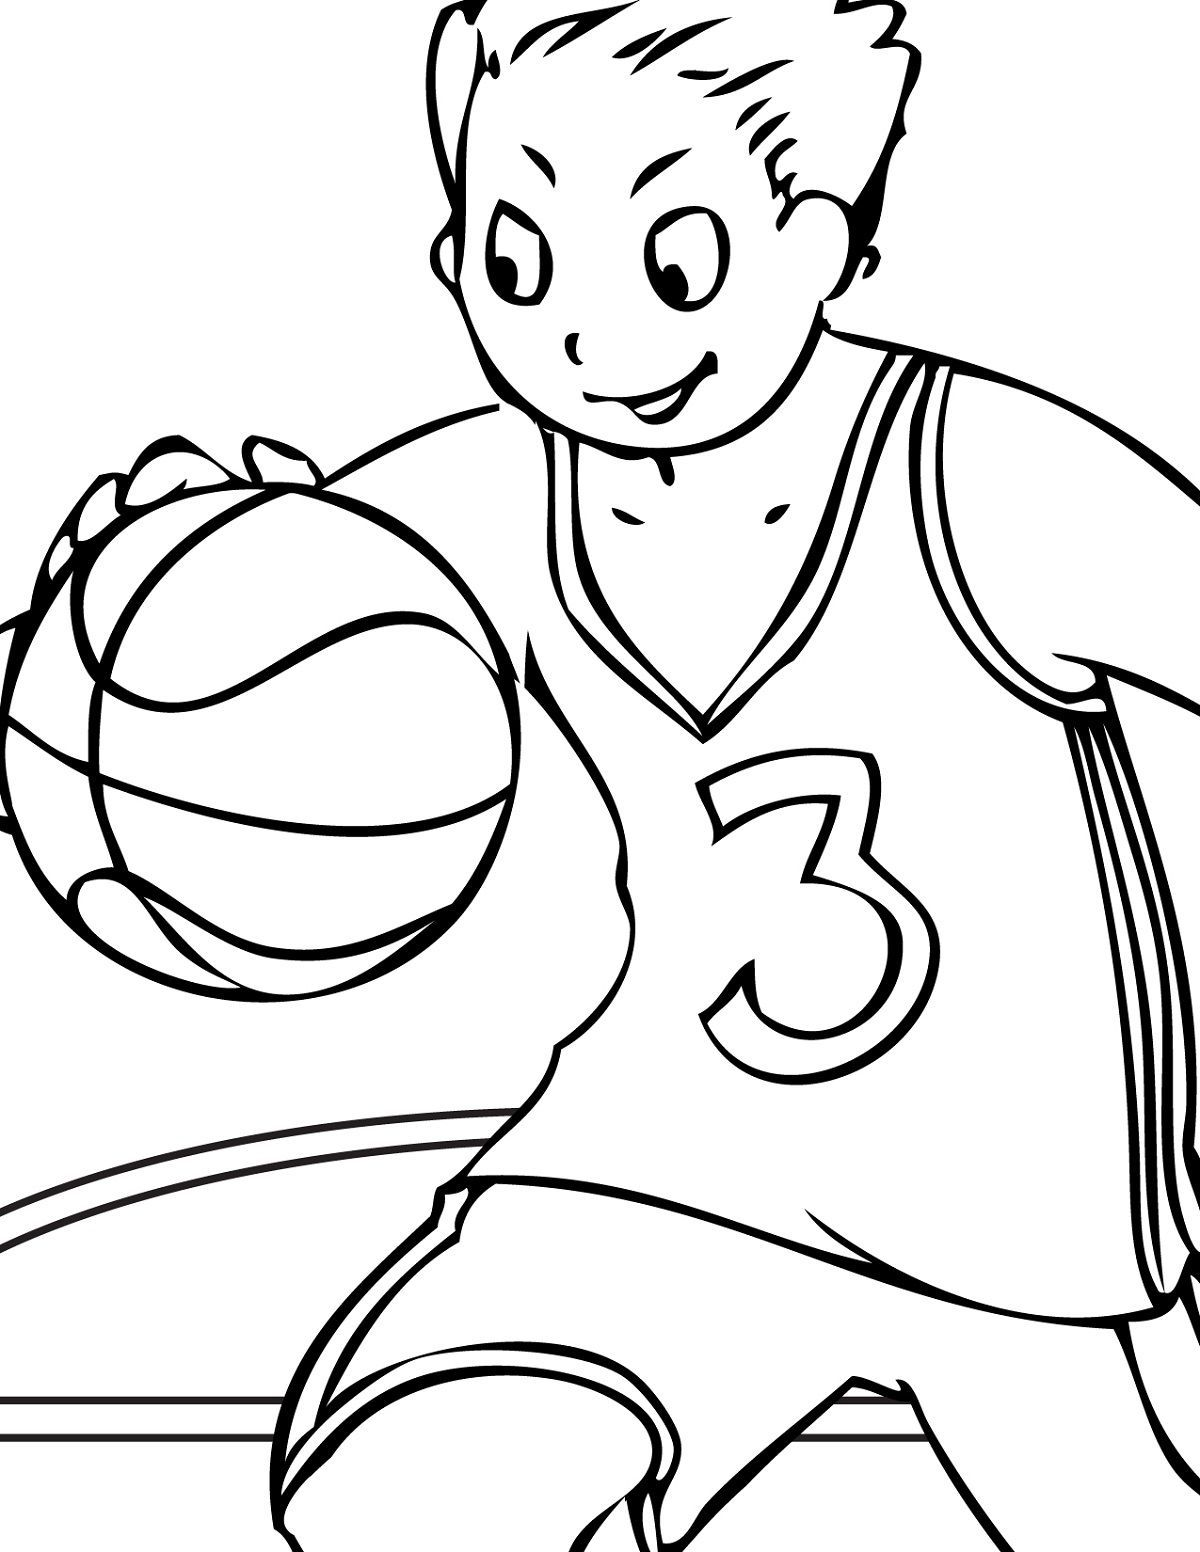 Basketball Activities Worksheet For Kids In